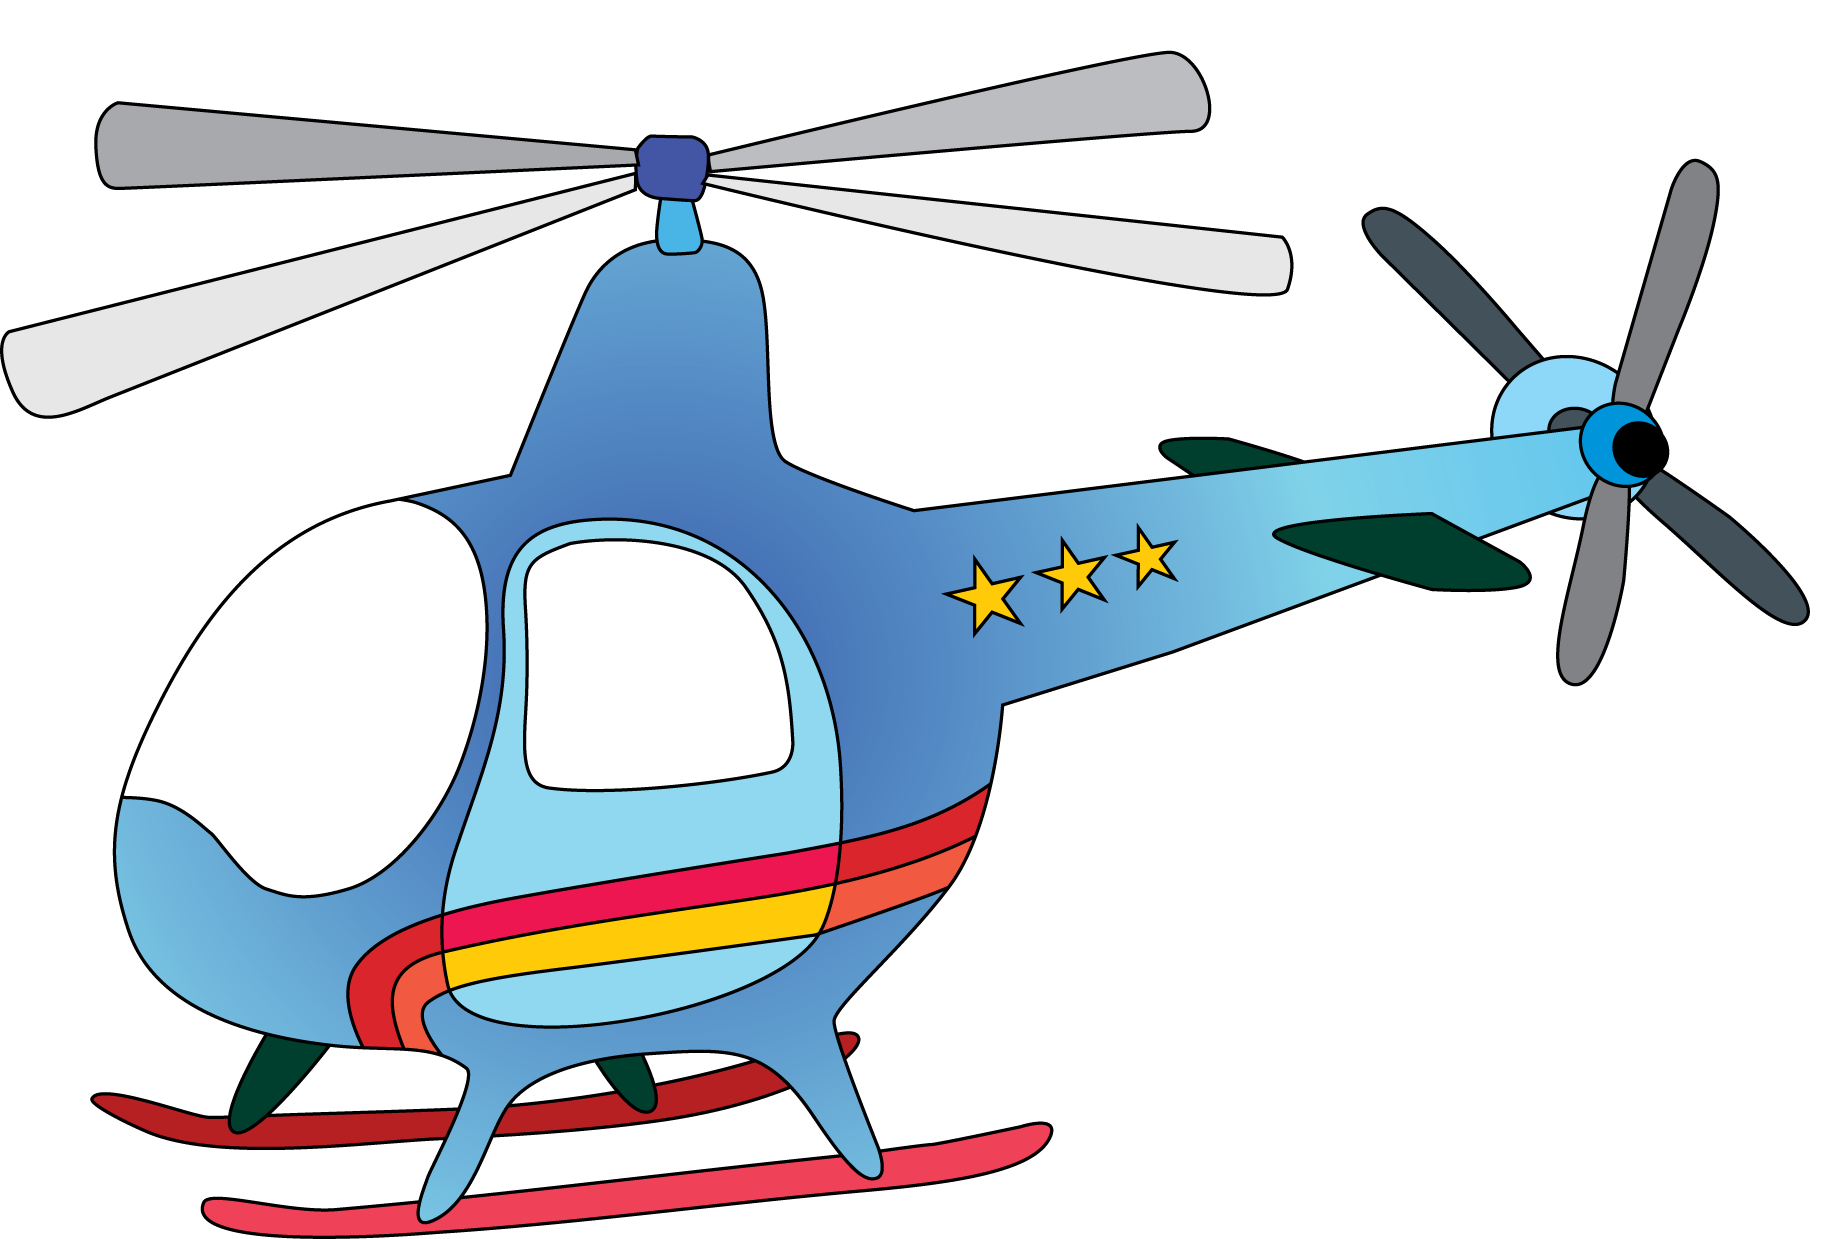 cute airplane clip art have about files nov cachedhelicopter clipart images graphics browse  [ 1845 x 1239 Pixel ]